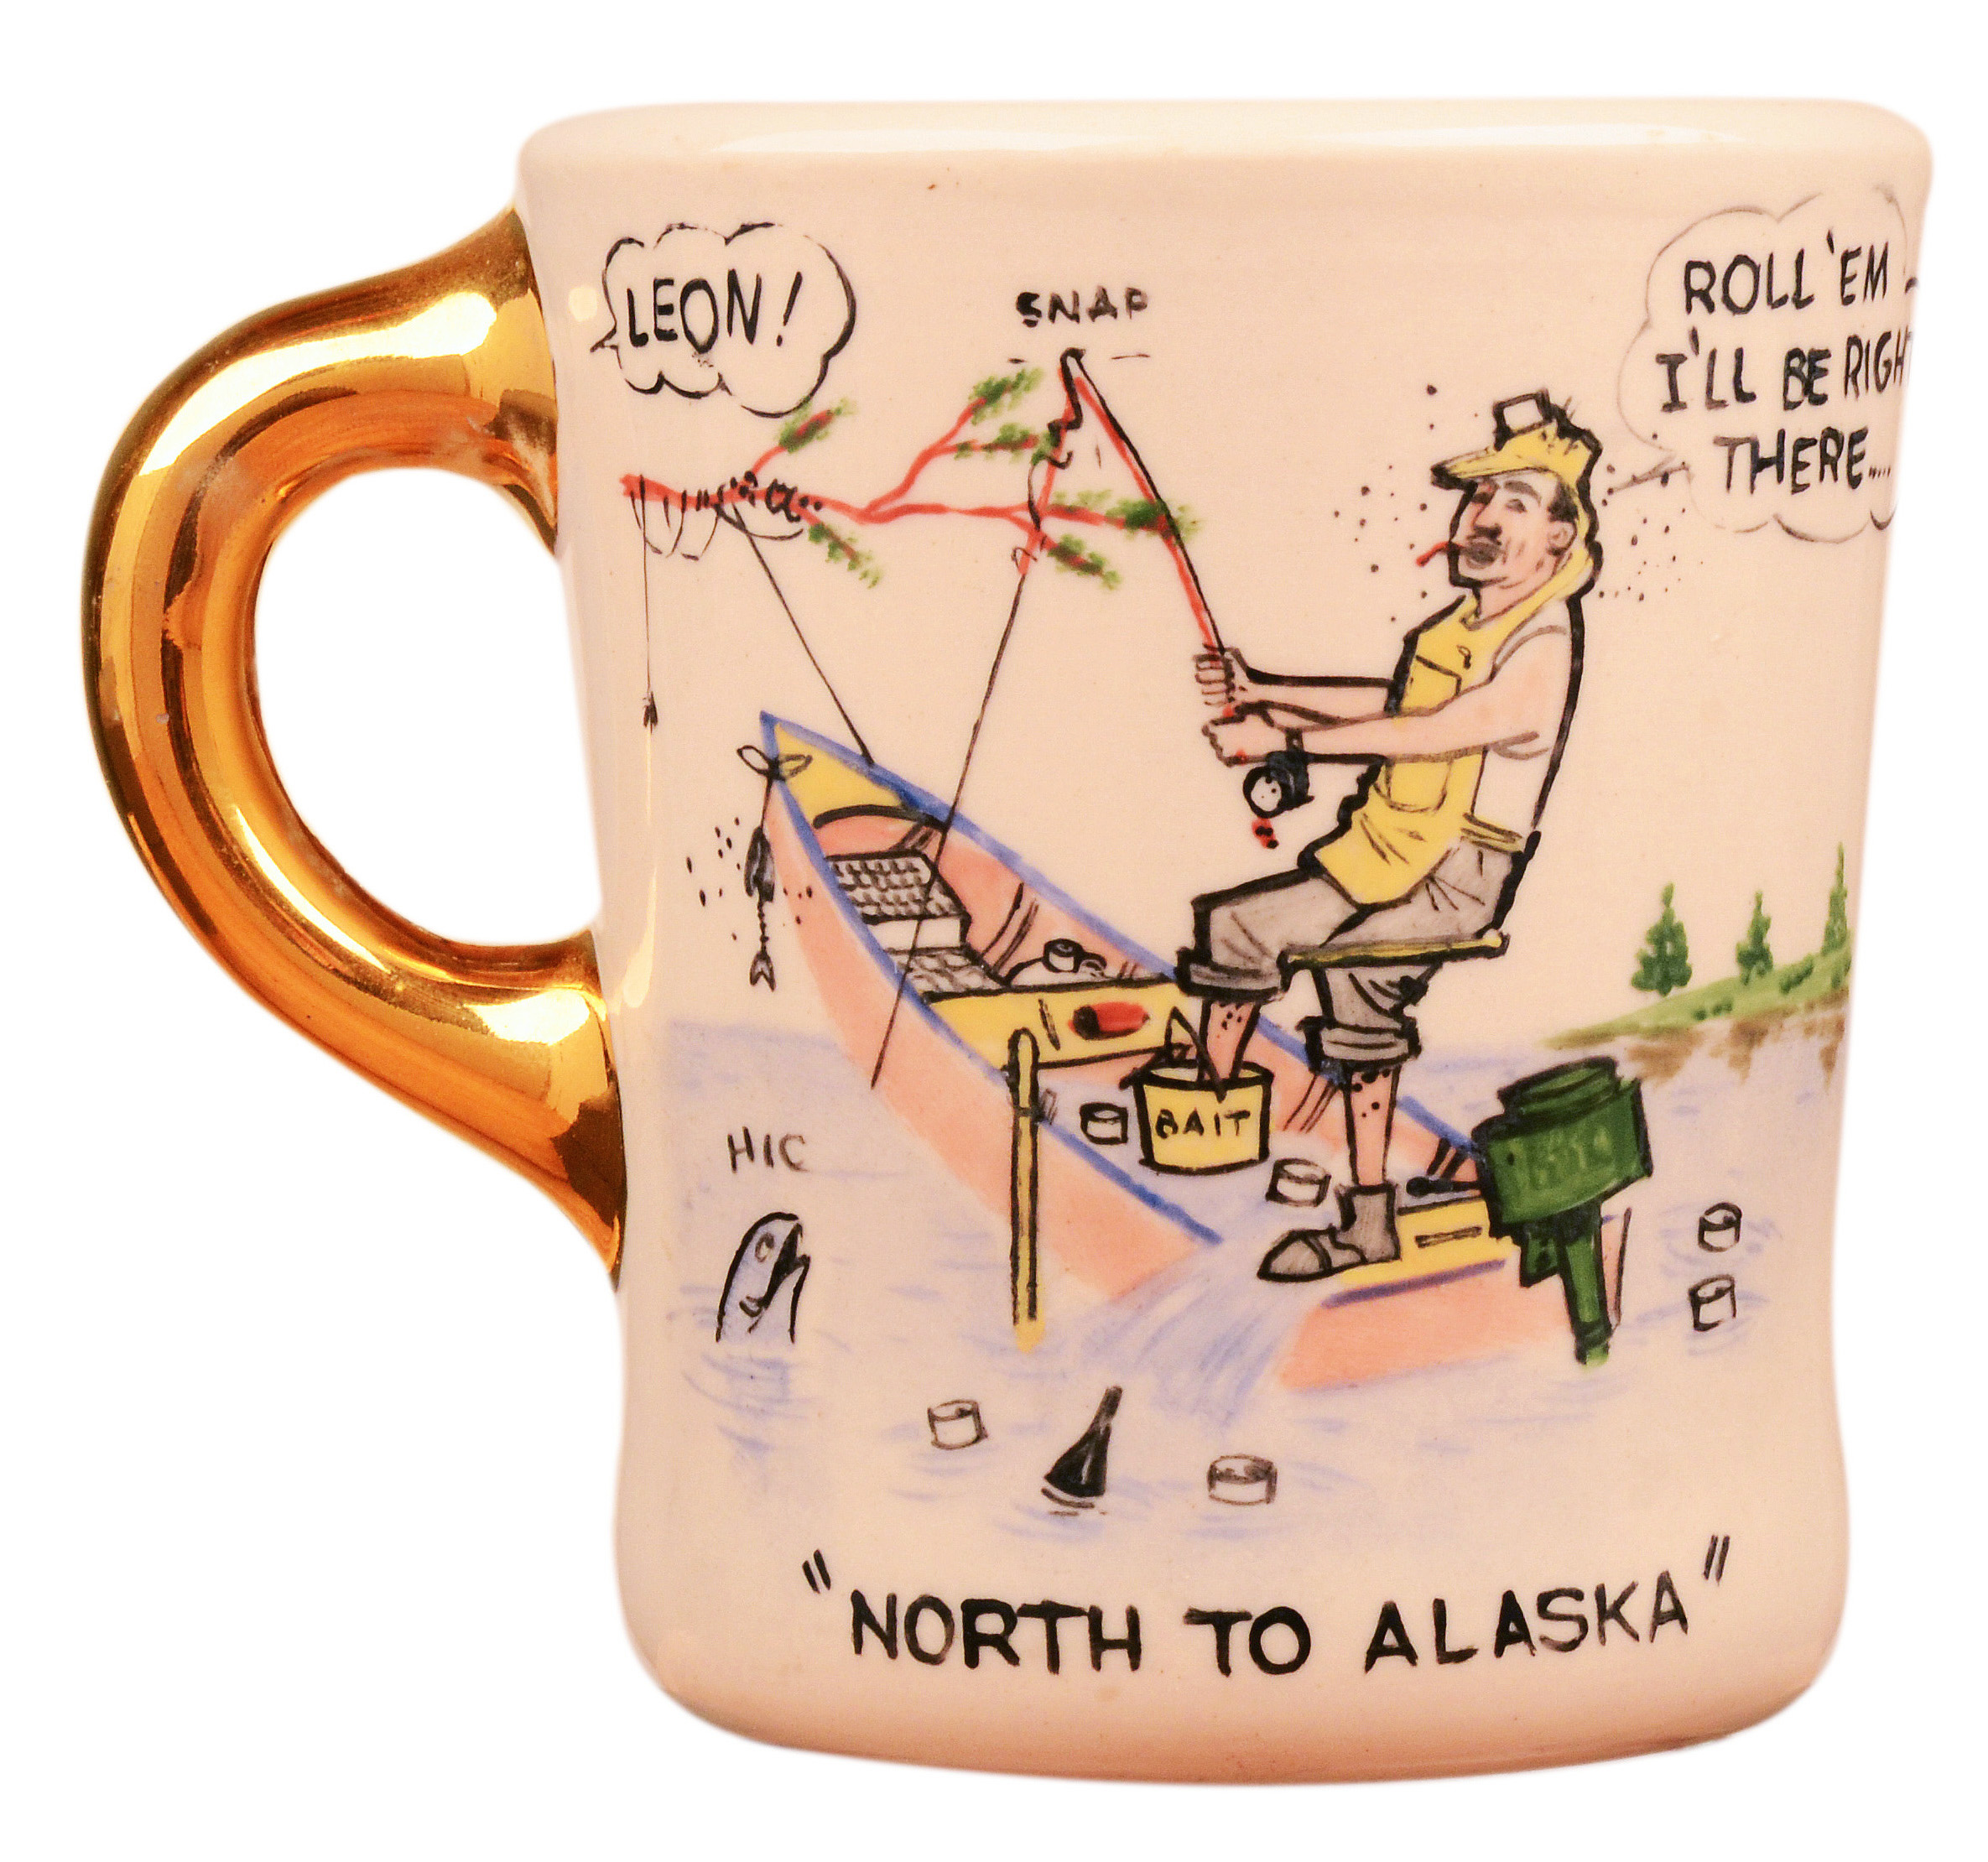 John Wayne mug for the 1960 movie North to Alaska, front.